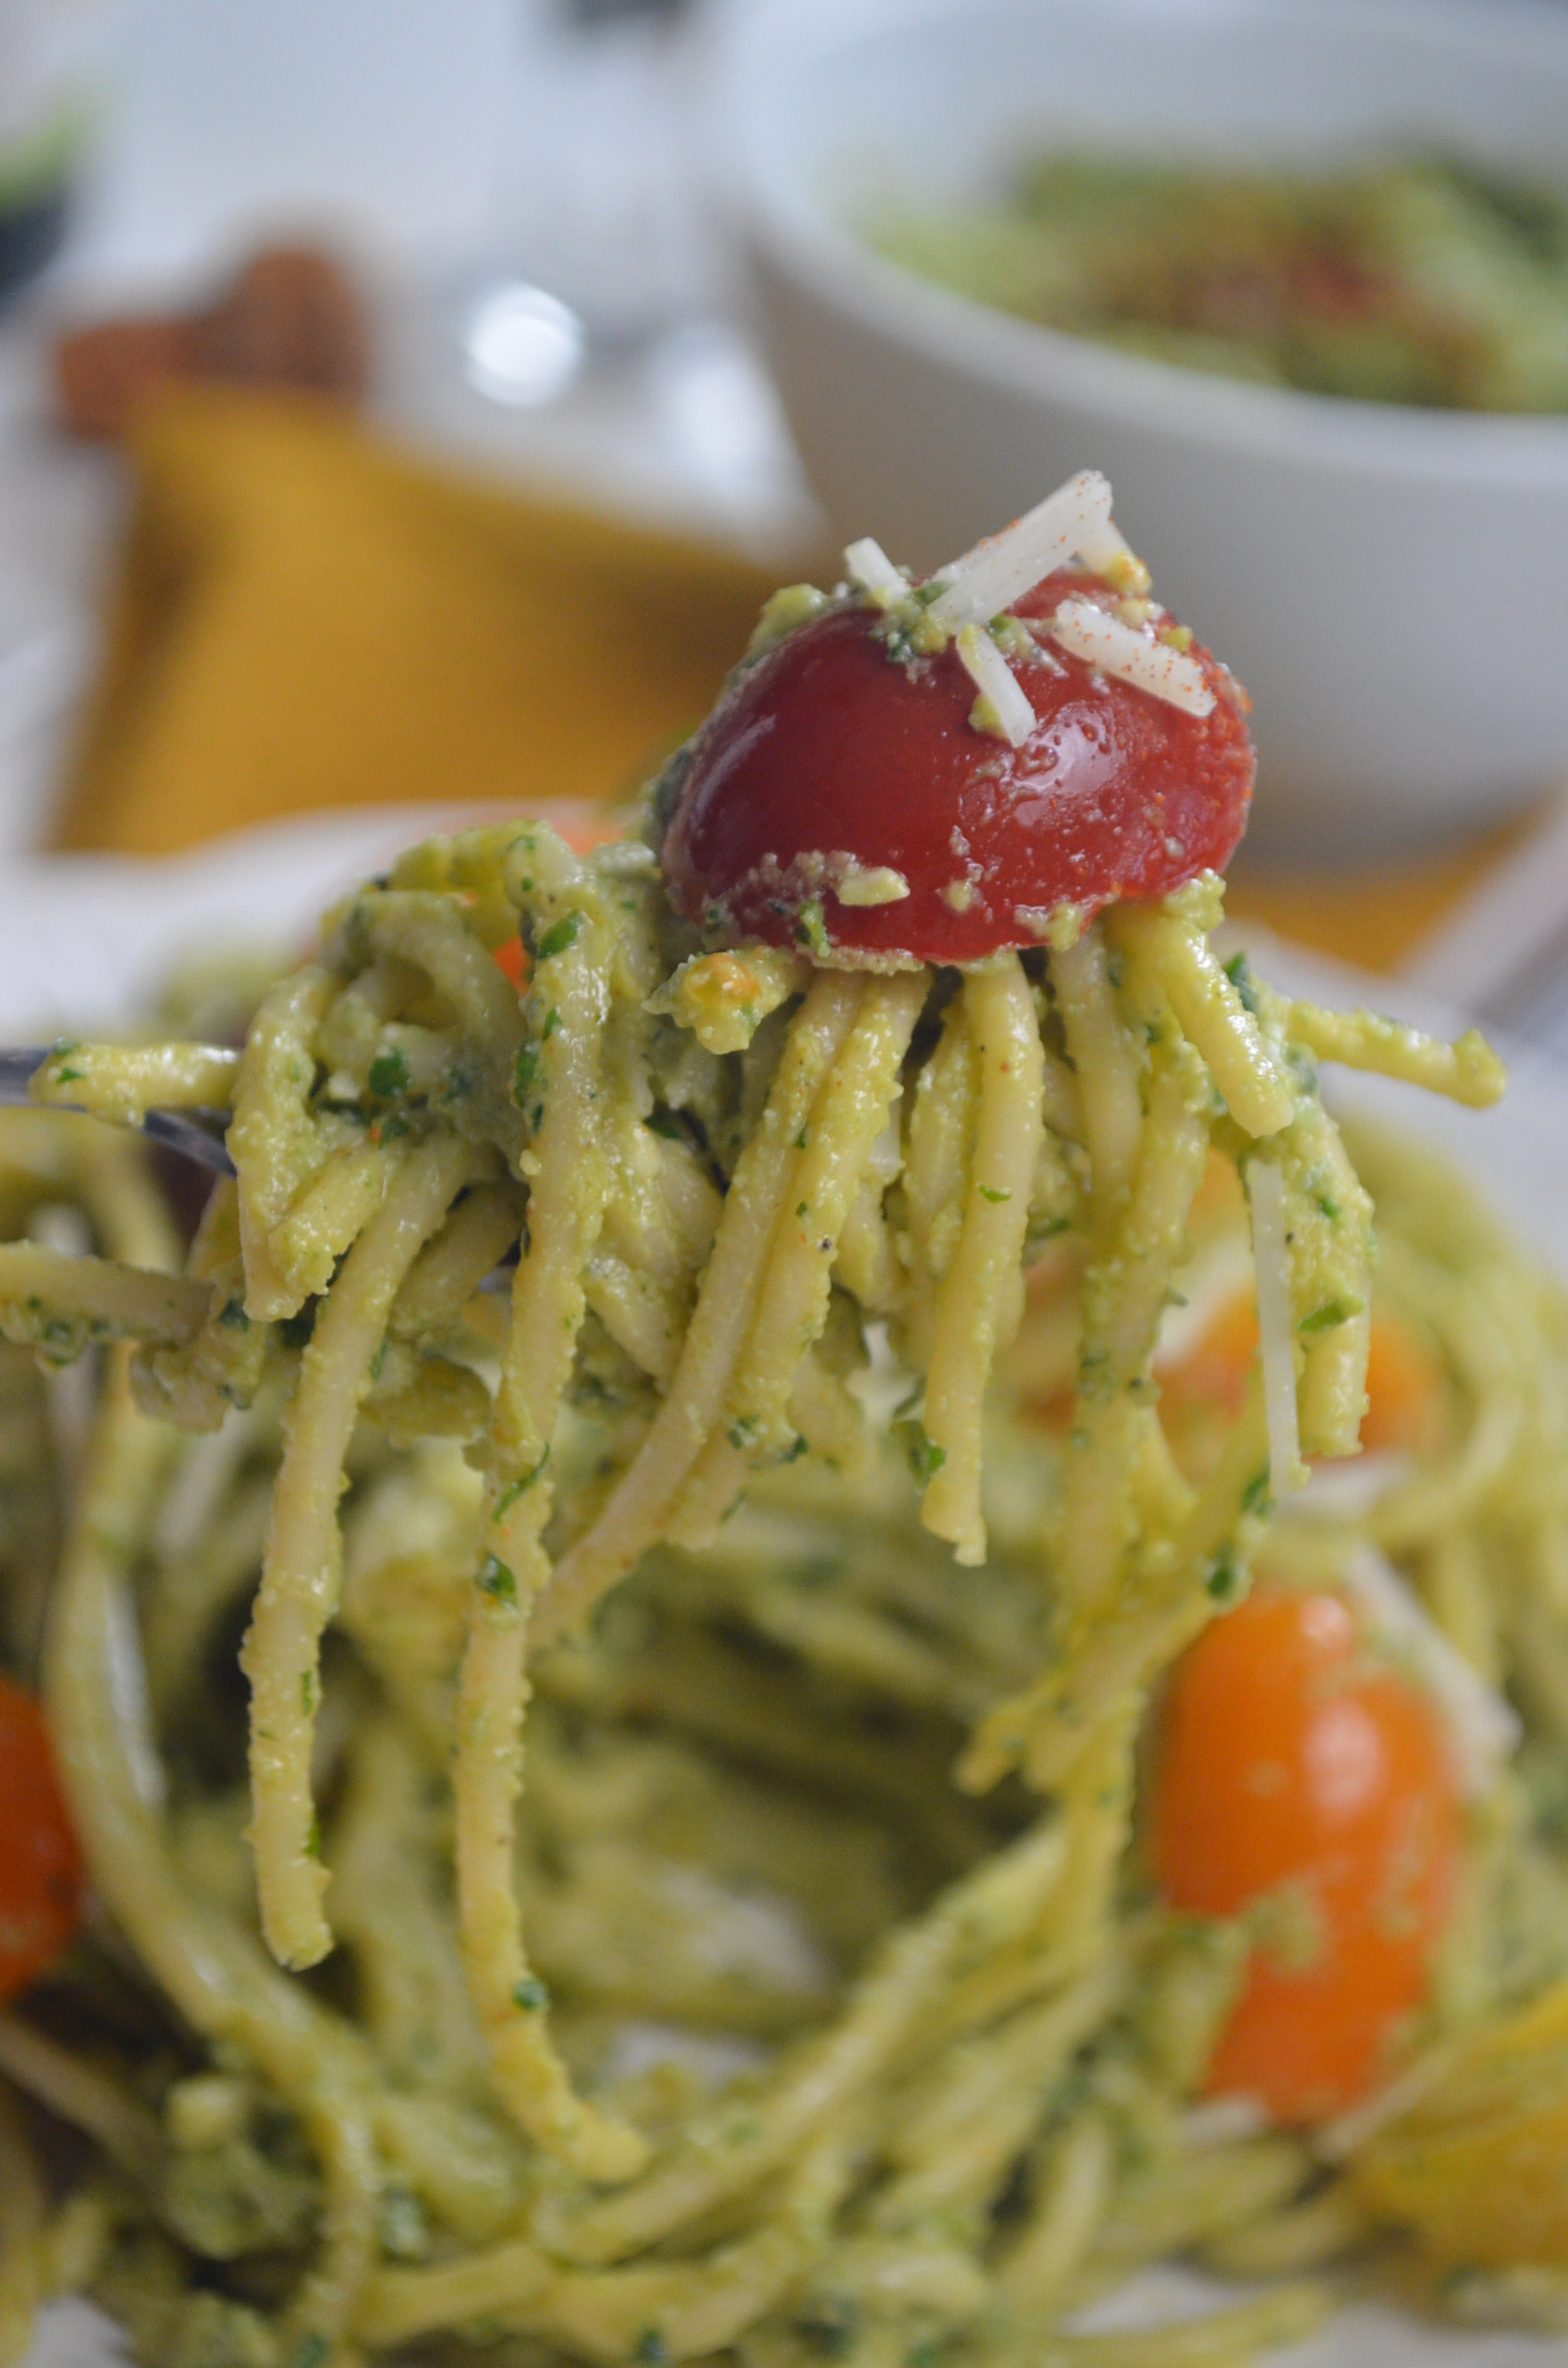 Avocado Pesto Pasta Sauce